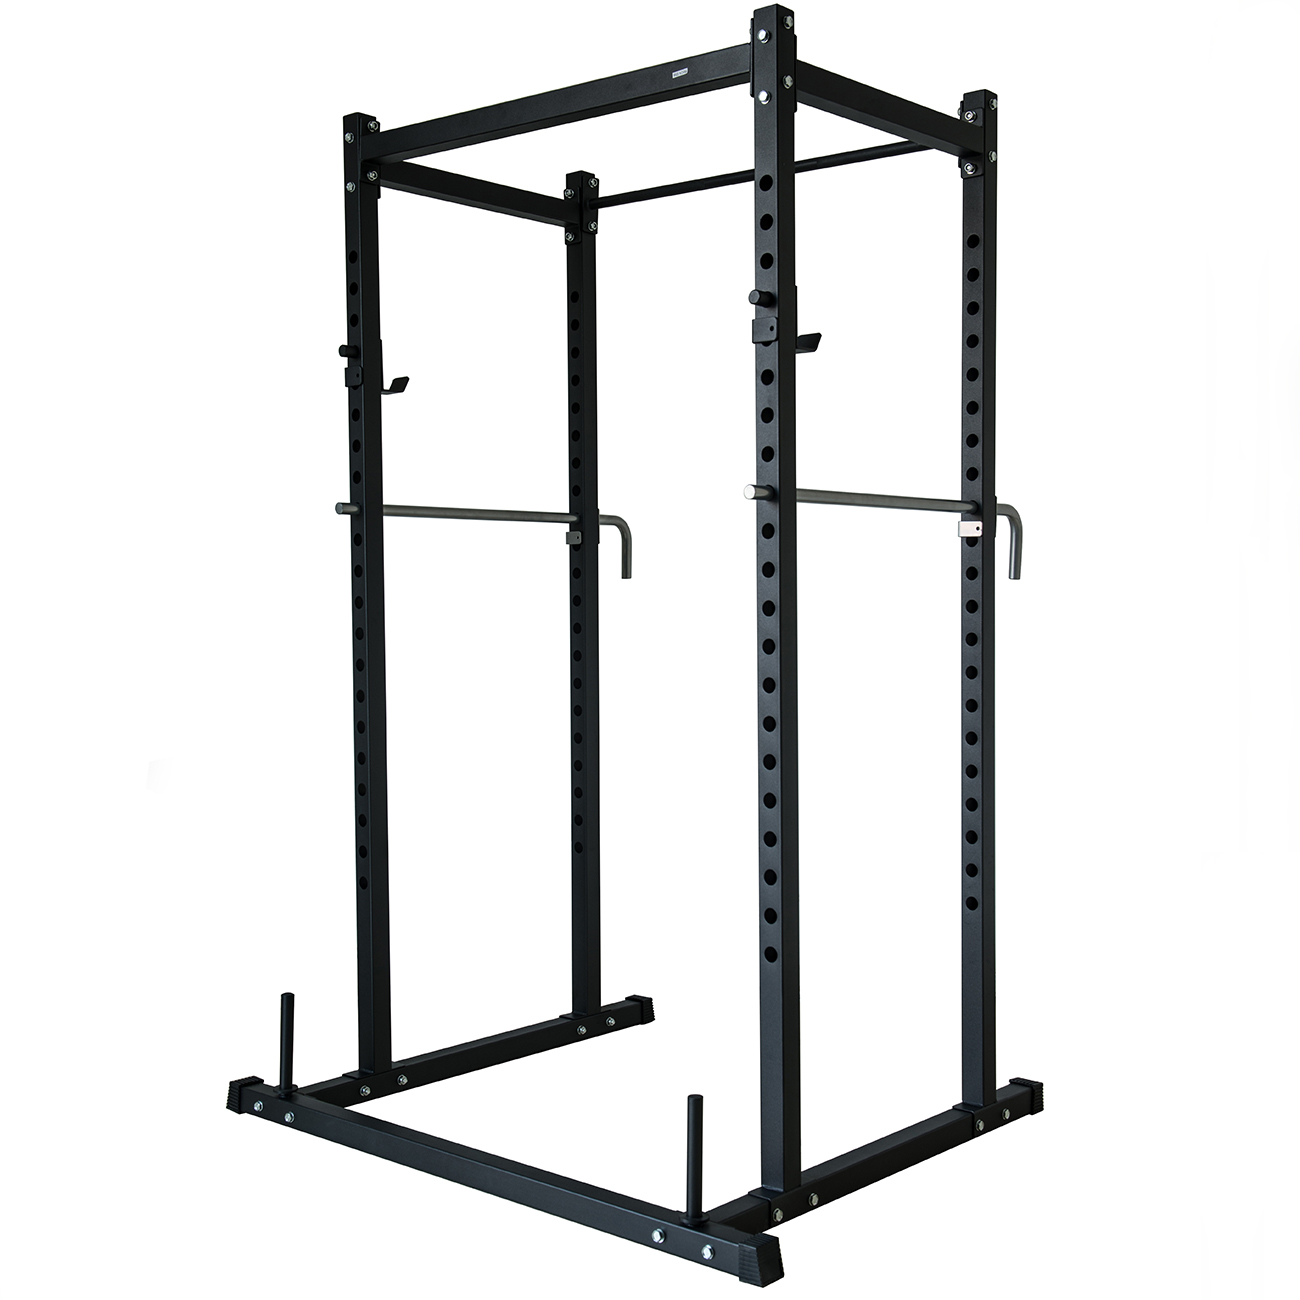 Akonza Power Rack Squat Deadlift Lift Cage Bench Racks